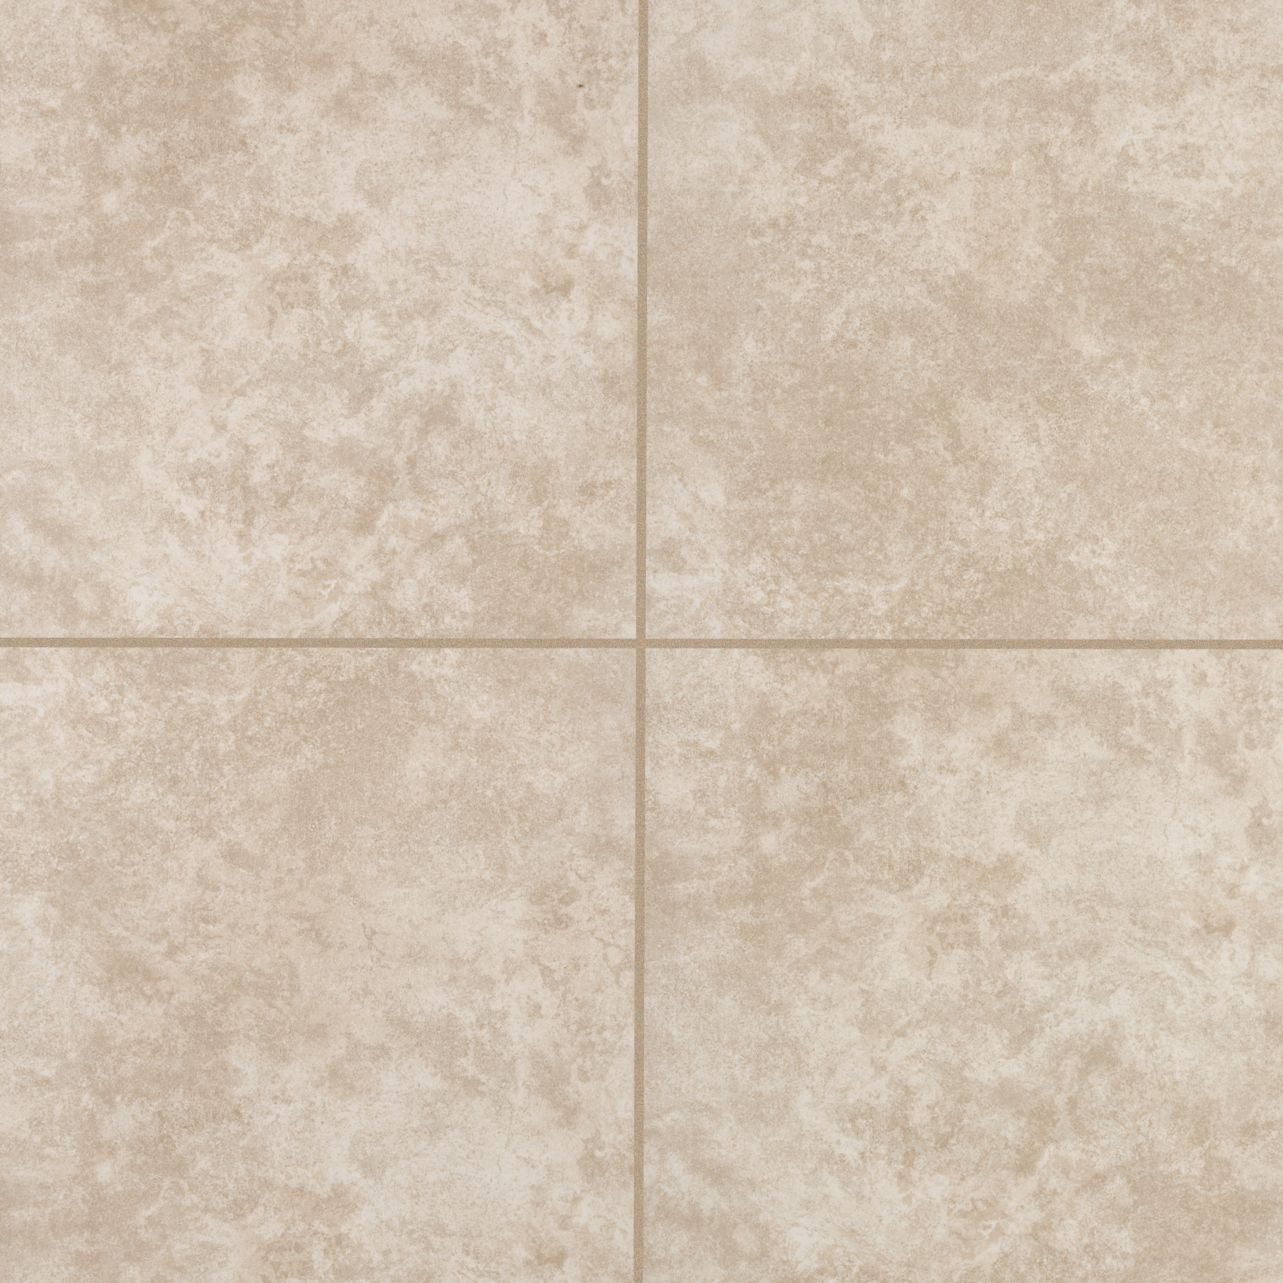 CeramicPorcelainTile AndelaWall T810-AN34 Beige